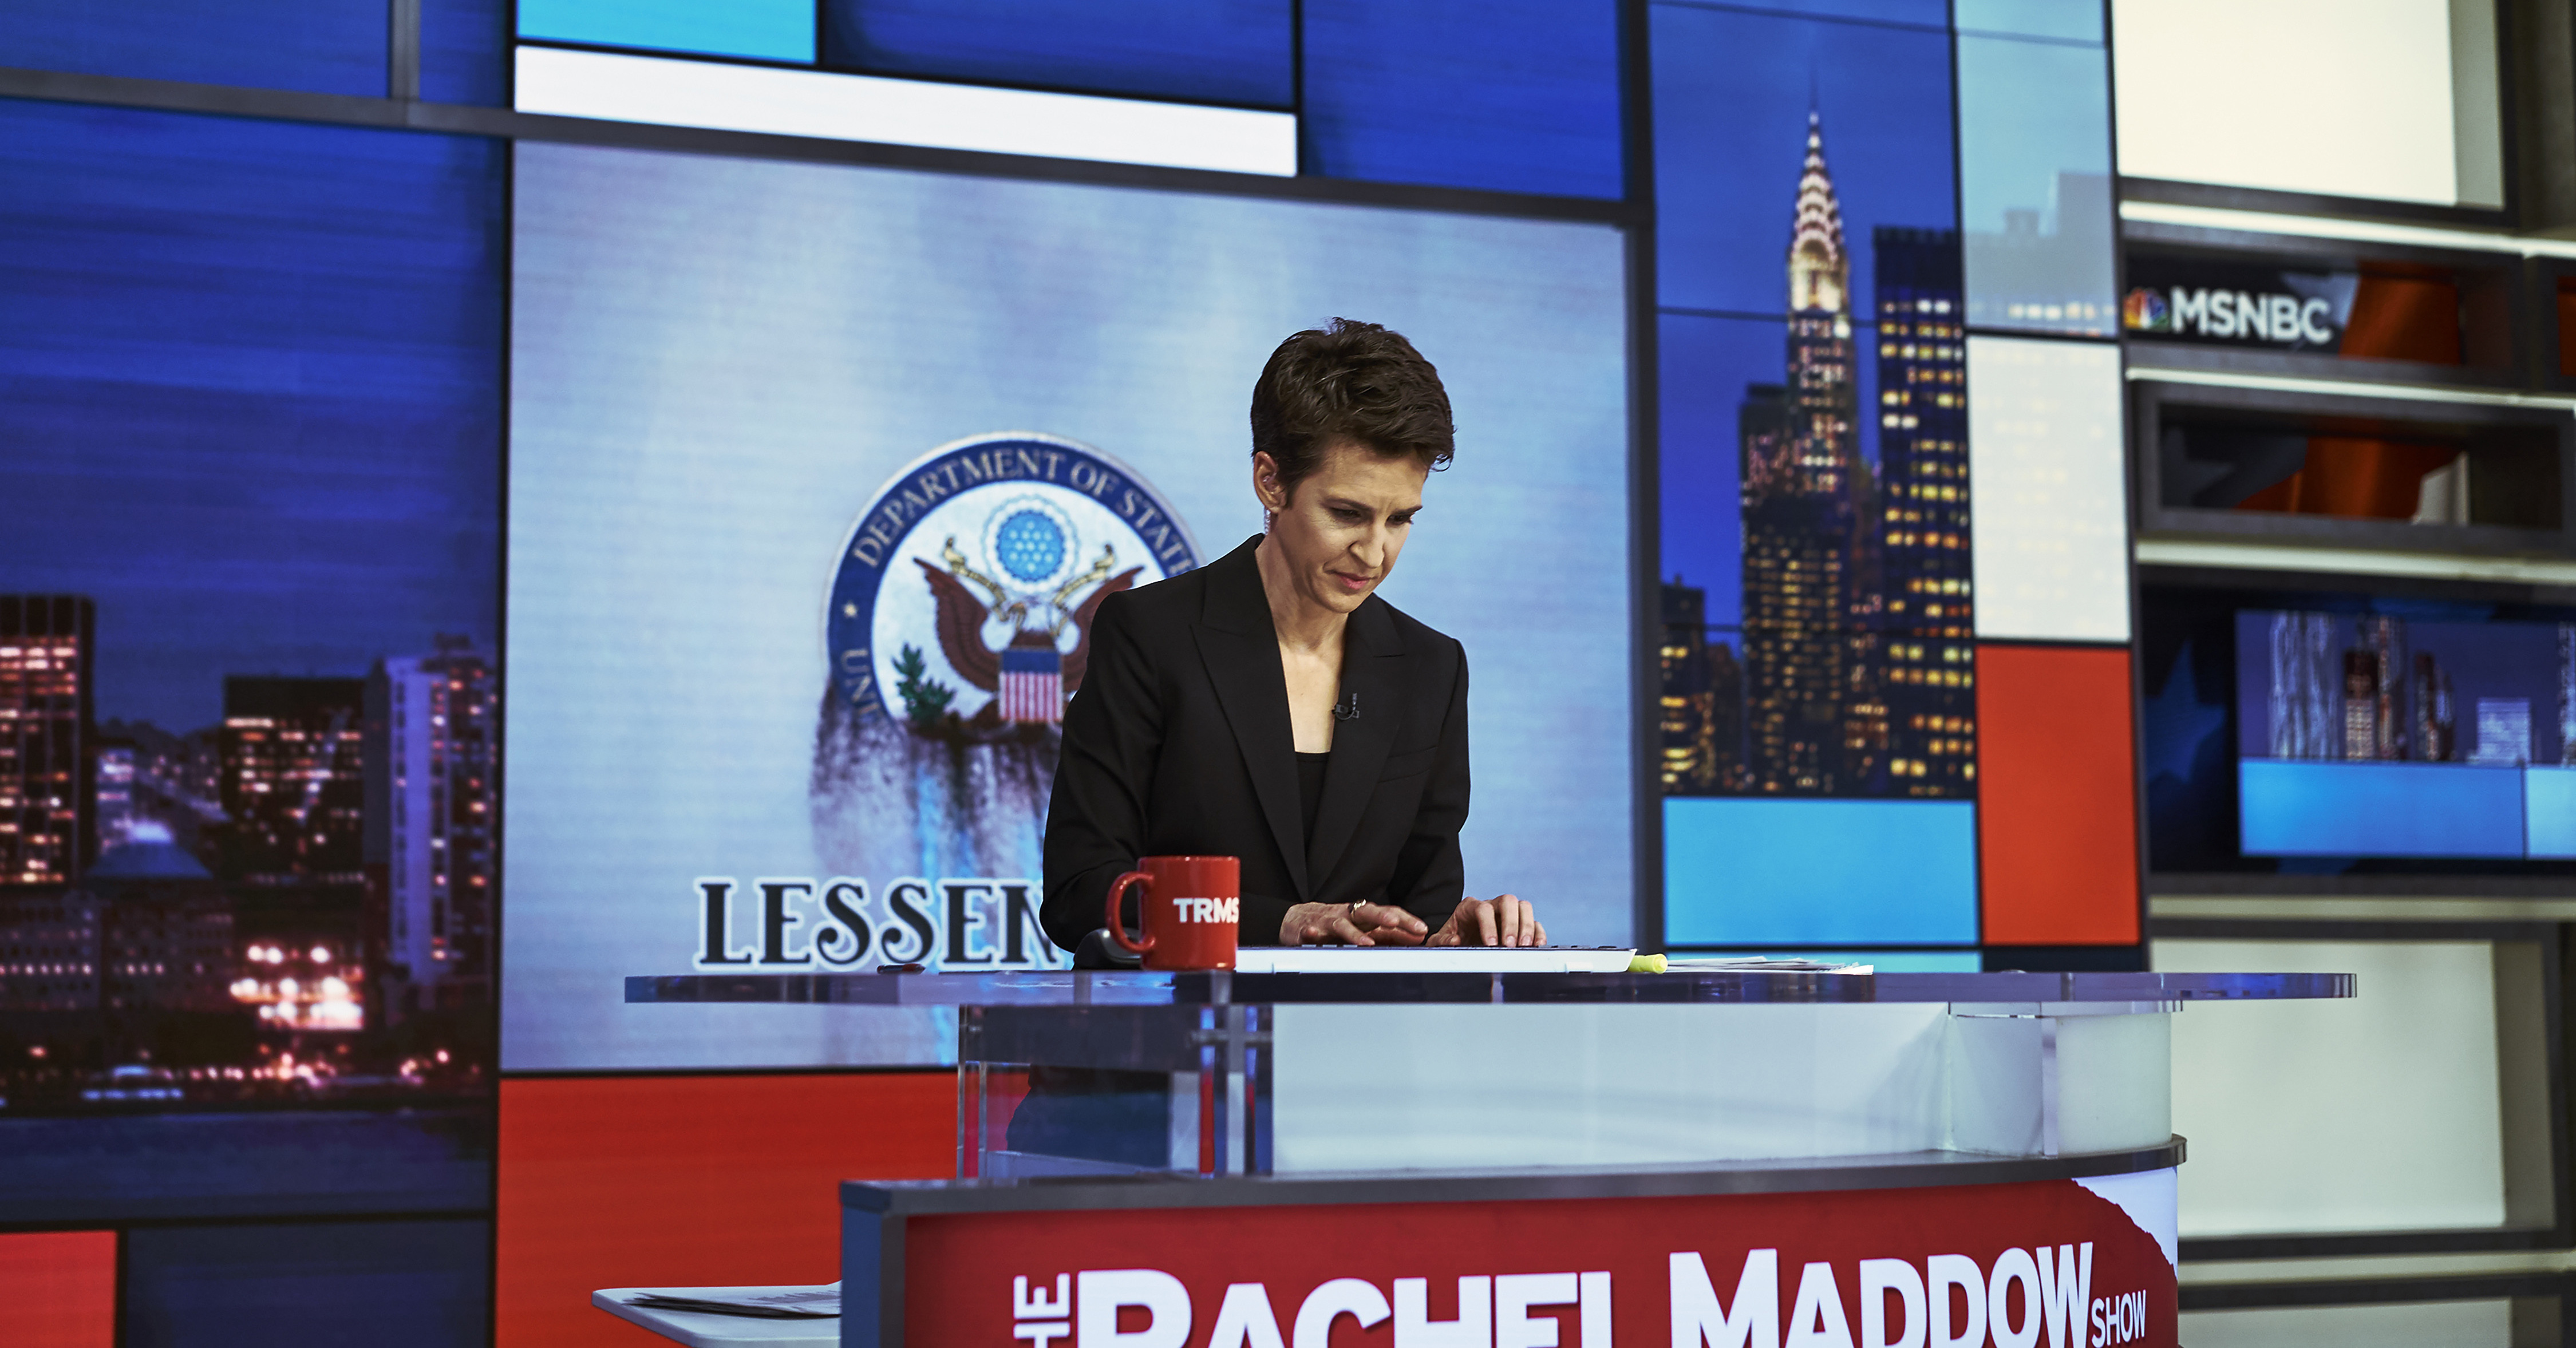 MSNBC's Rachel Maddow Sees Russia Connection All Over